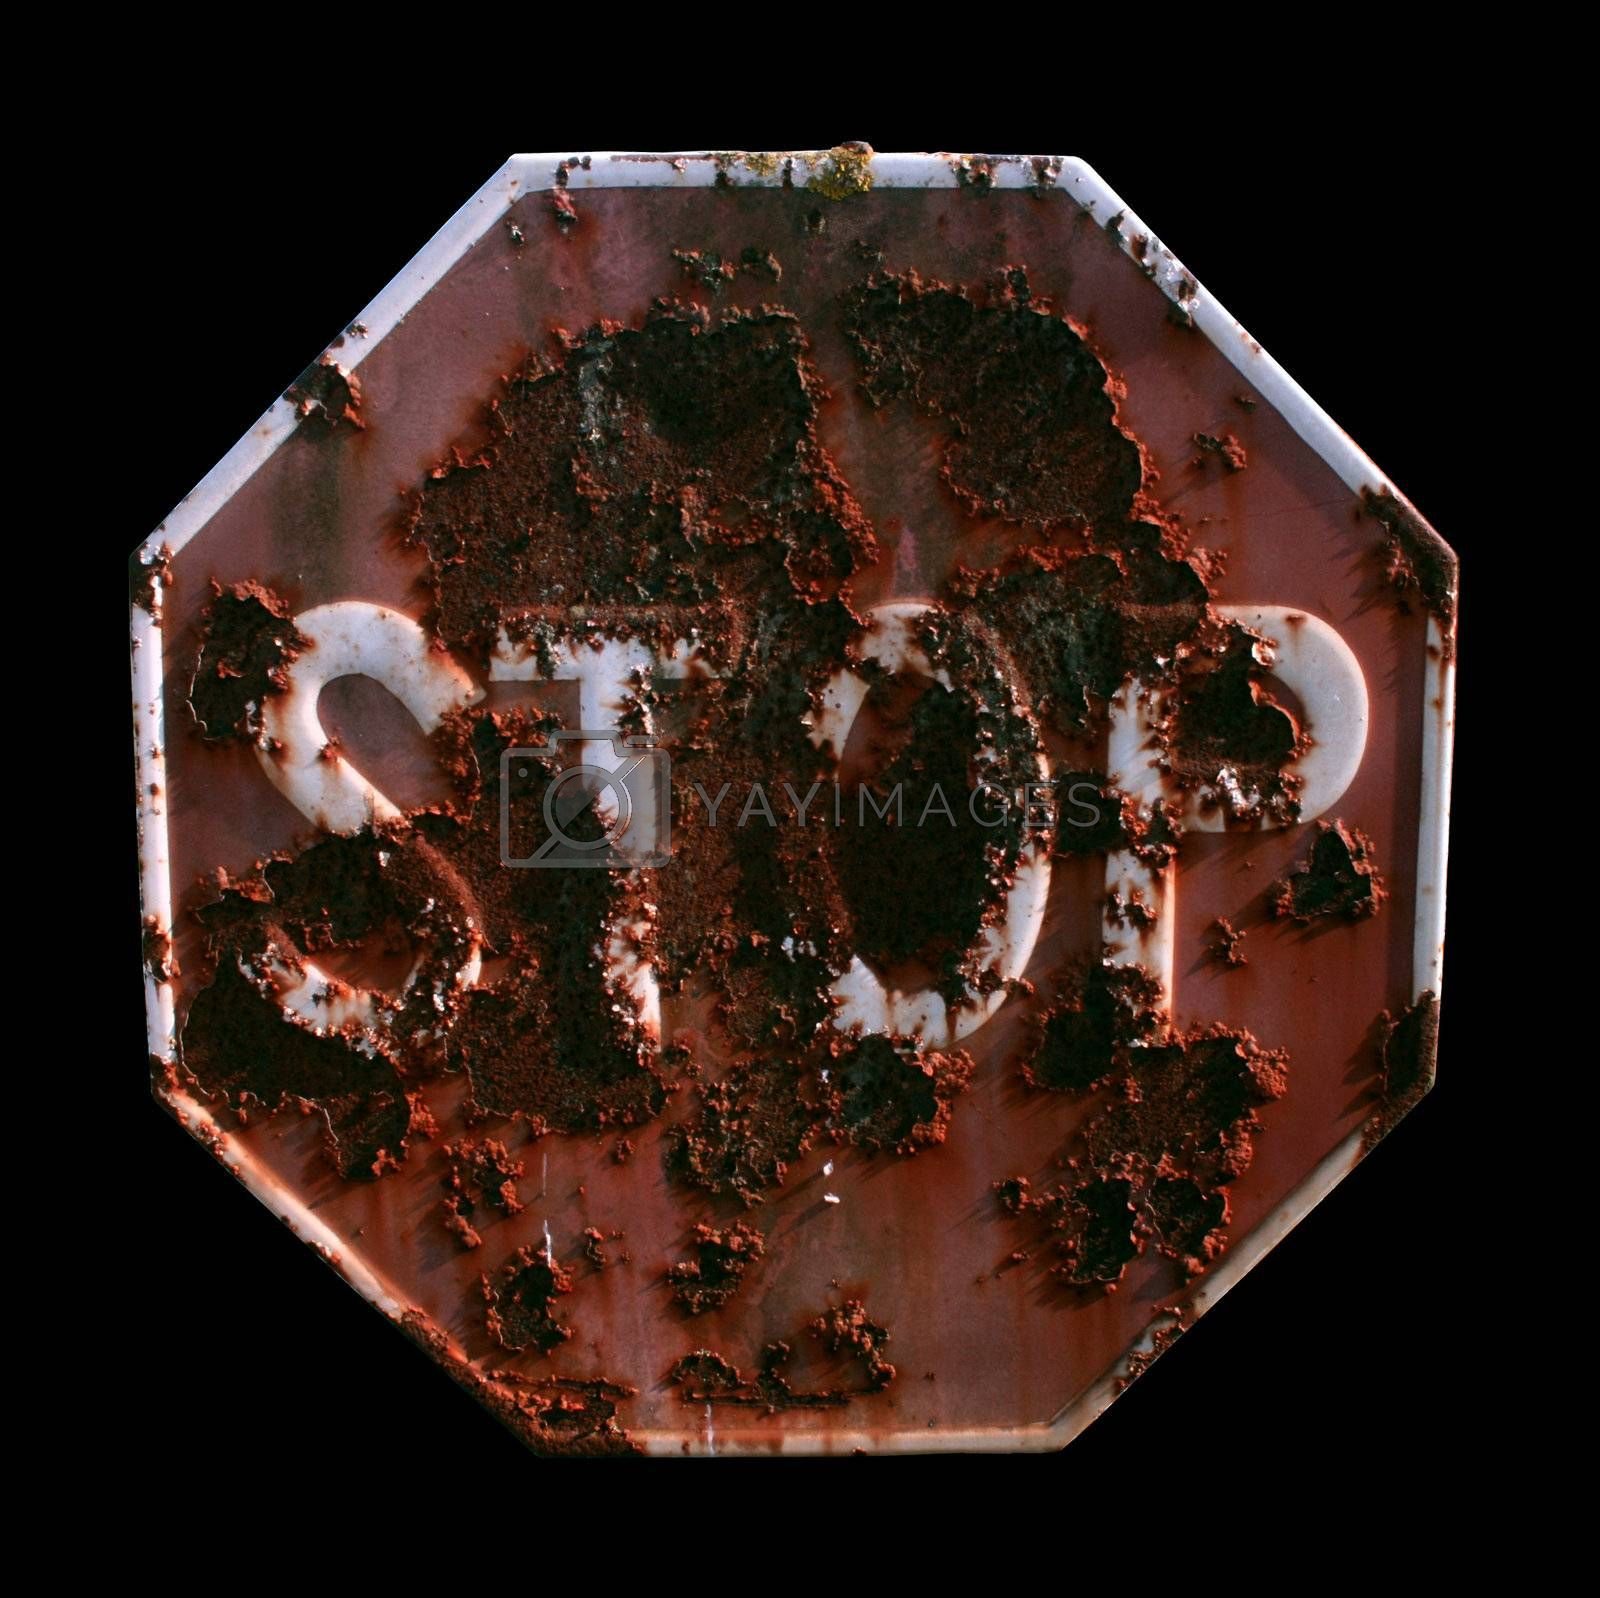 STOP signal by nile